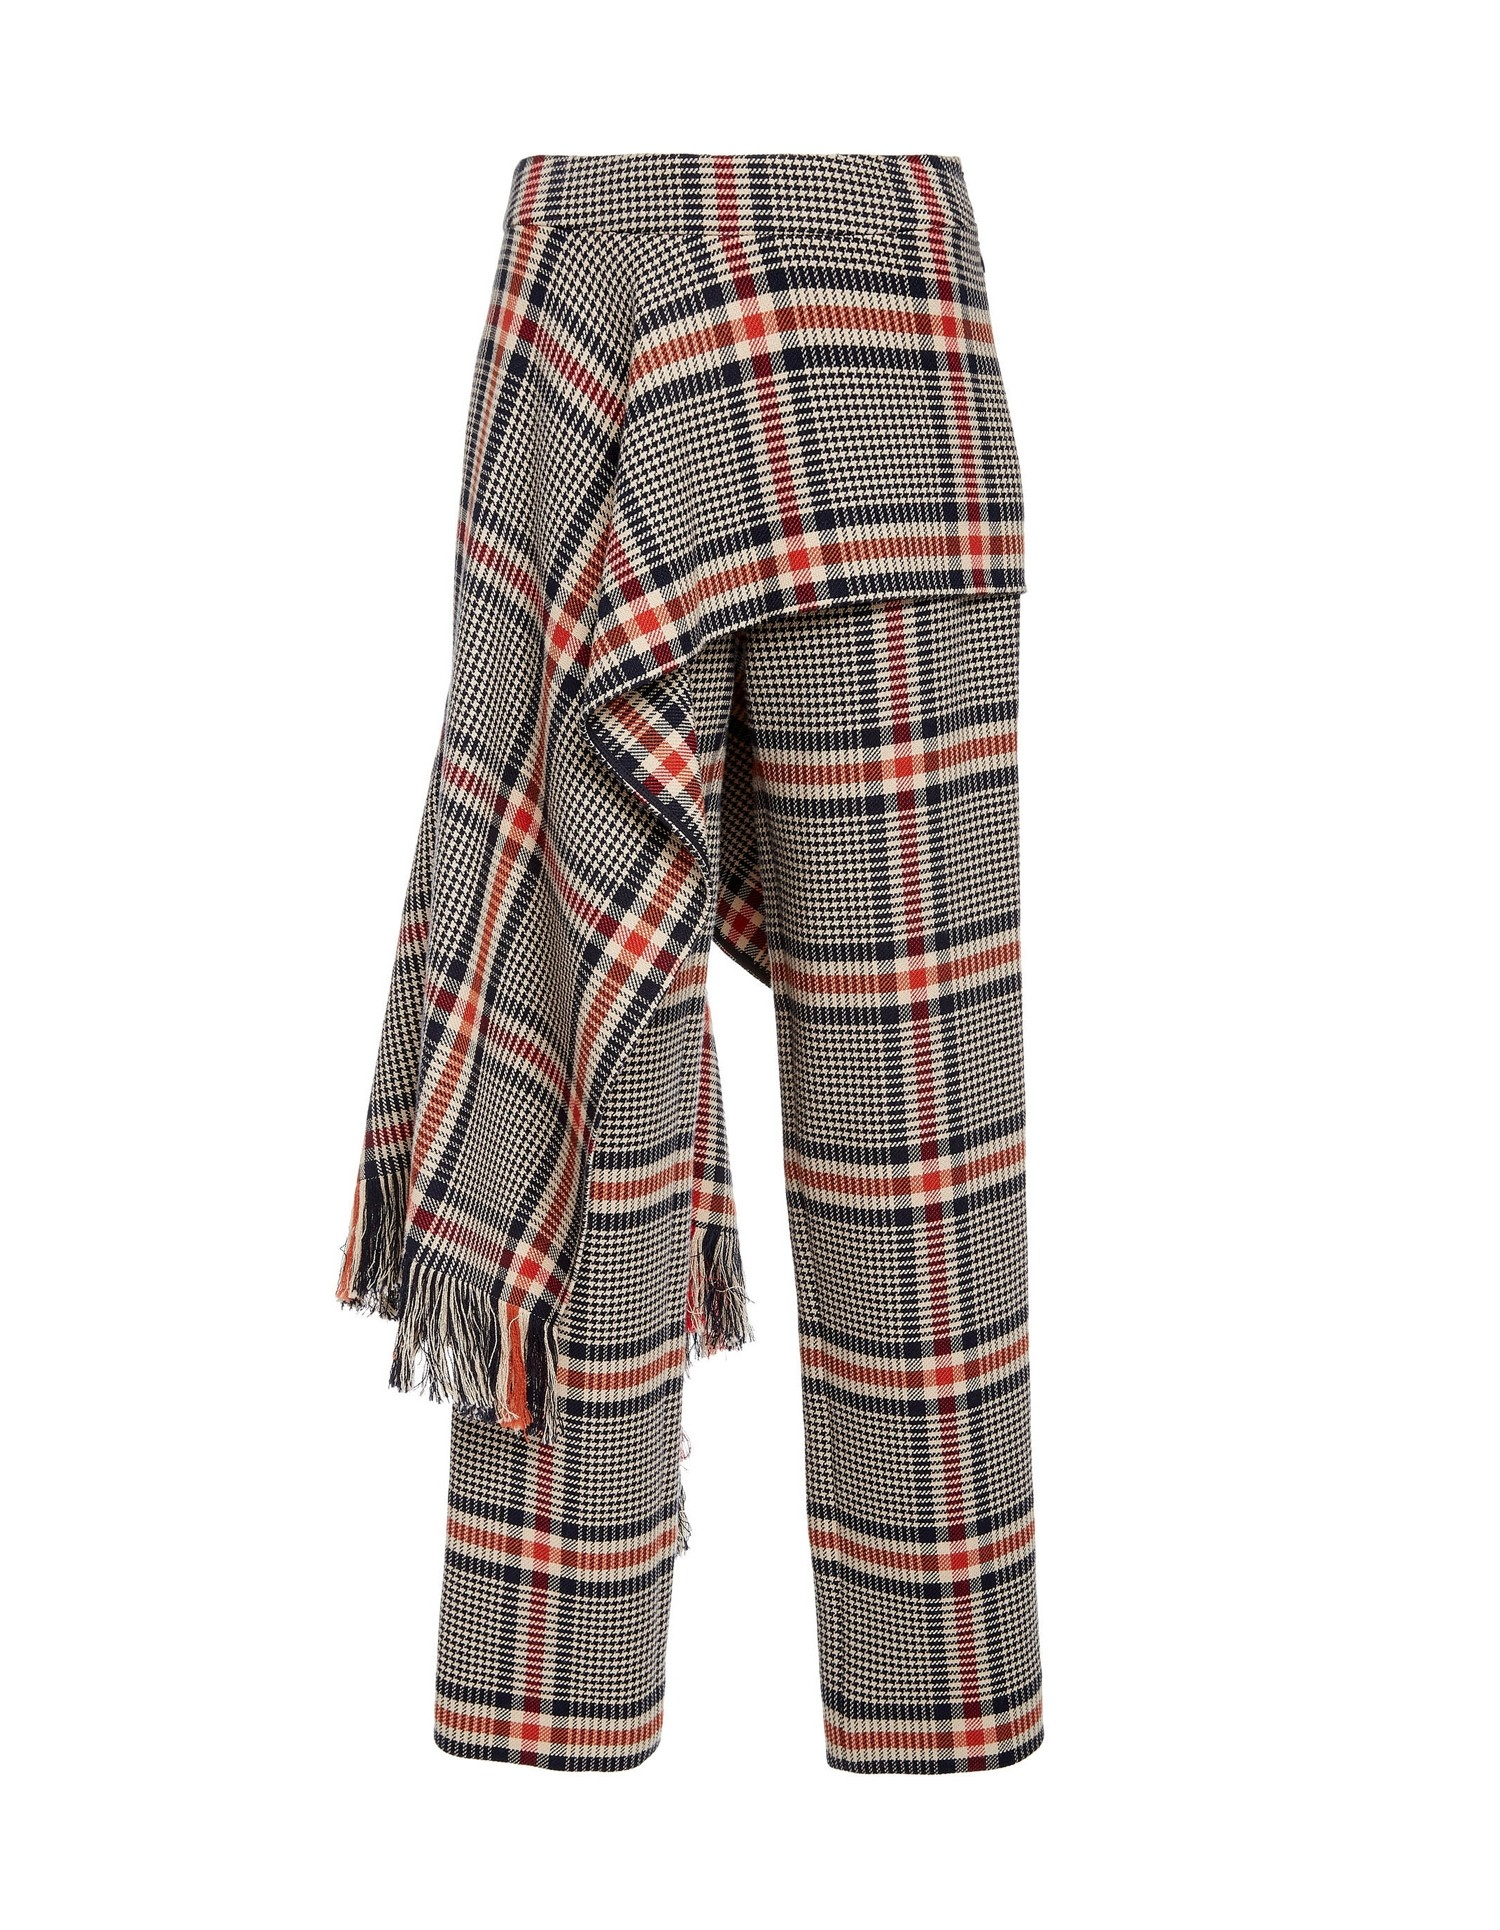 MONSE Apron Plaid Pant on Model Front View